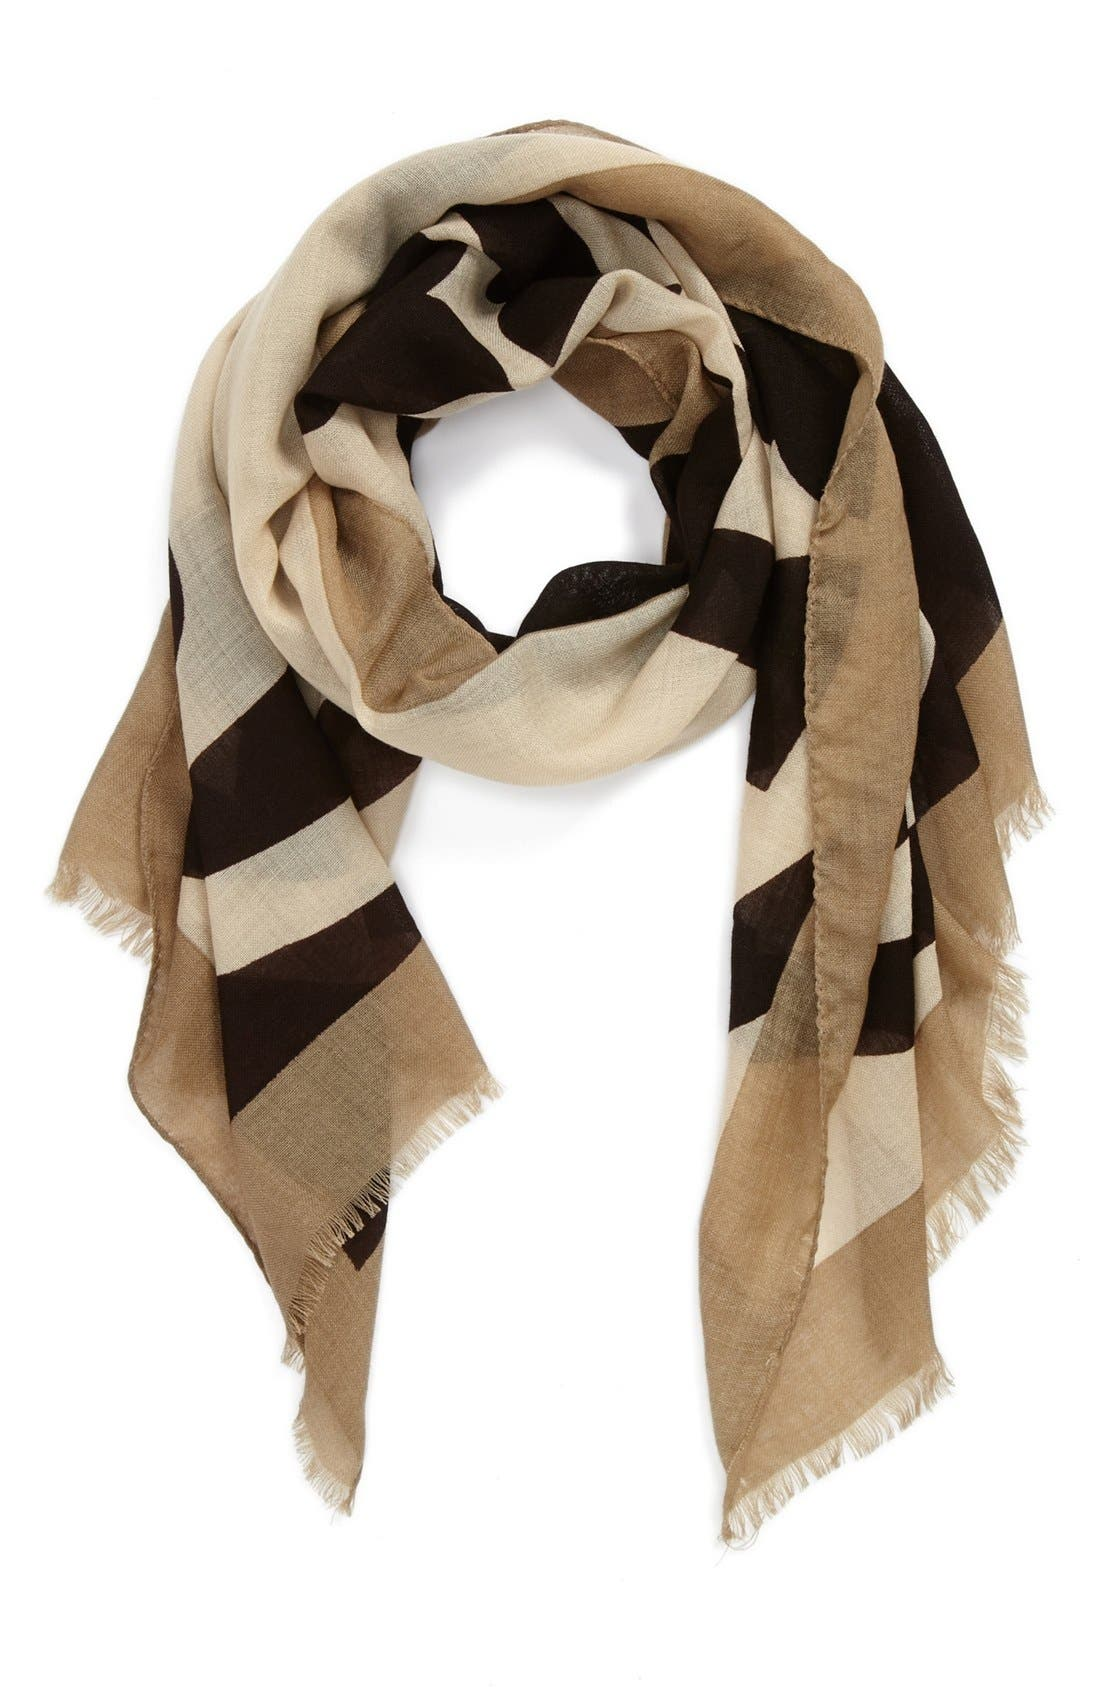 TORY BURCH, 'Reva' Wool Scarf, Main thumbnail 1, color, 200